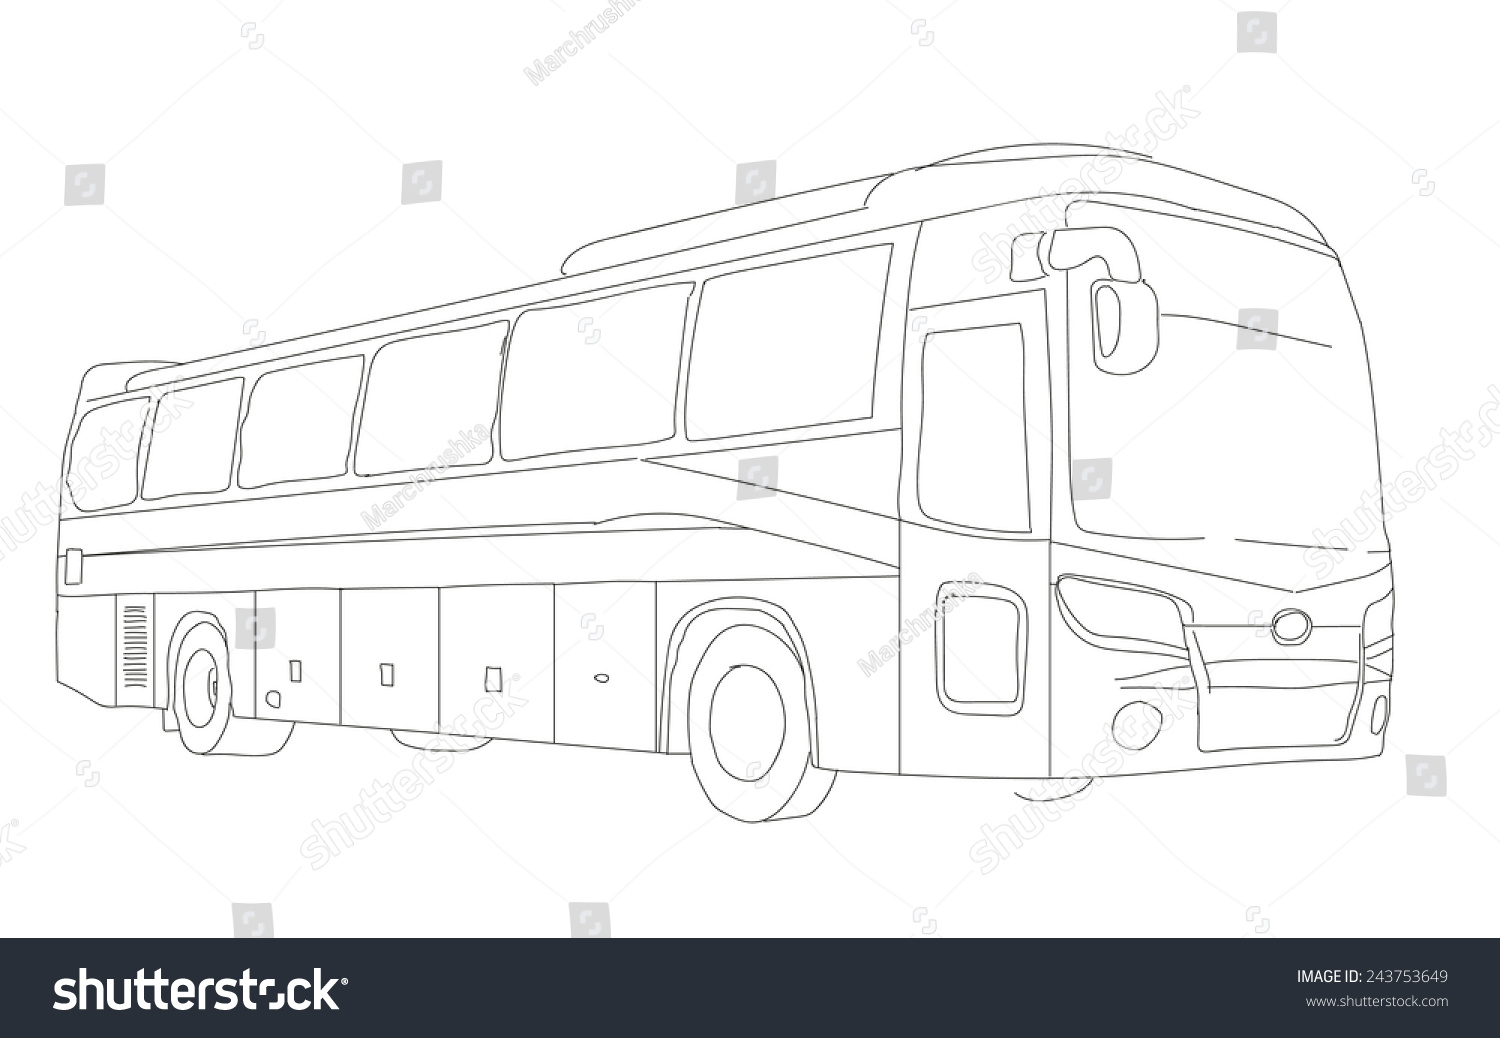 Bus sketch pencil drawing style stock photo 243753649 avopix com